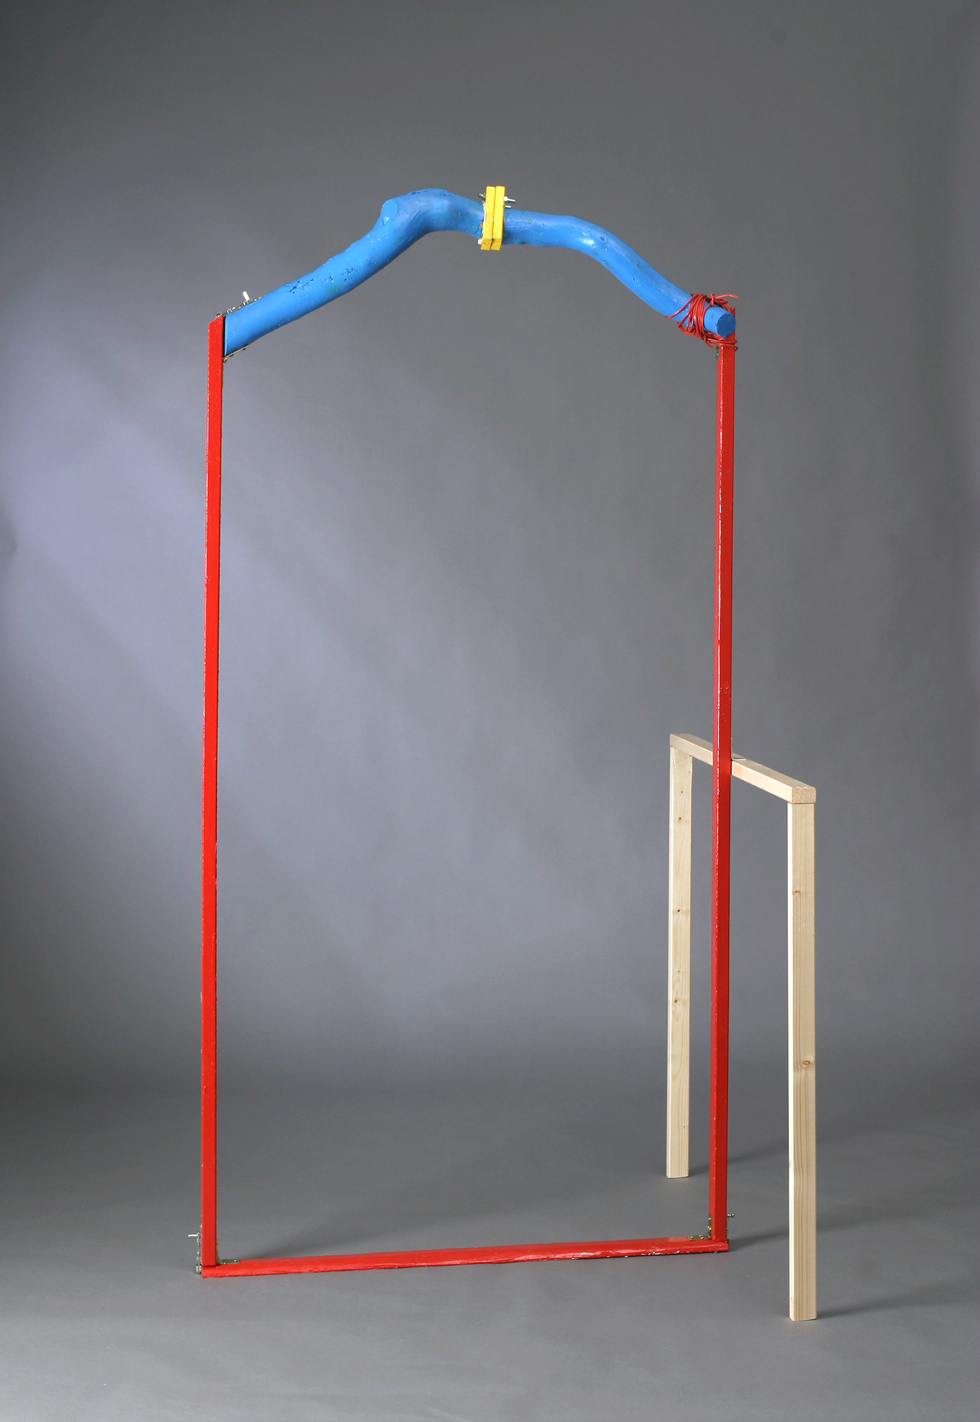 Jimmie Durham Arc de Triomphe for Personal Use 1997 wood, acrylic paint, metal, string aprox. 220 x 90 x 80 cm